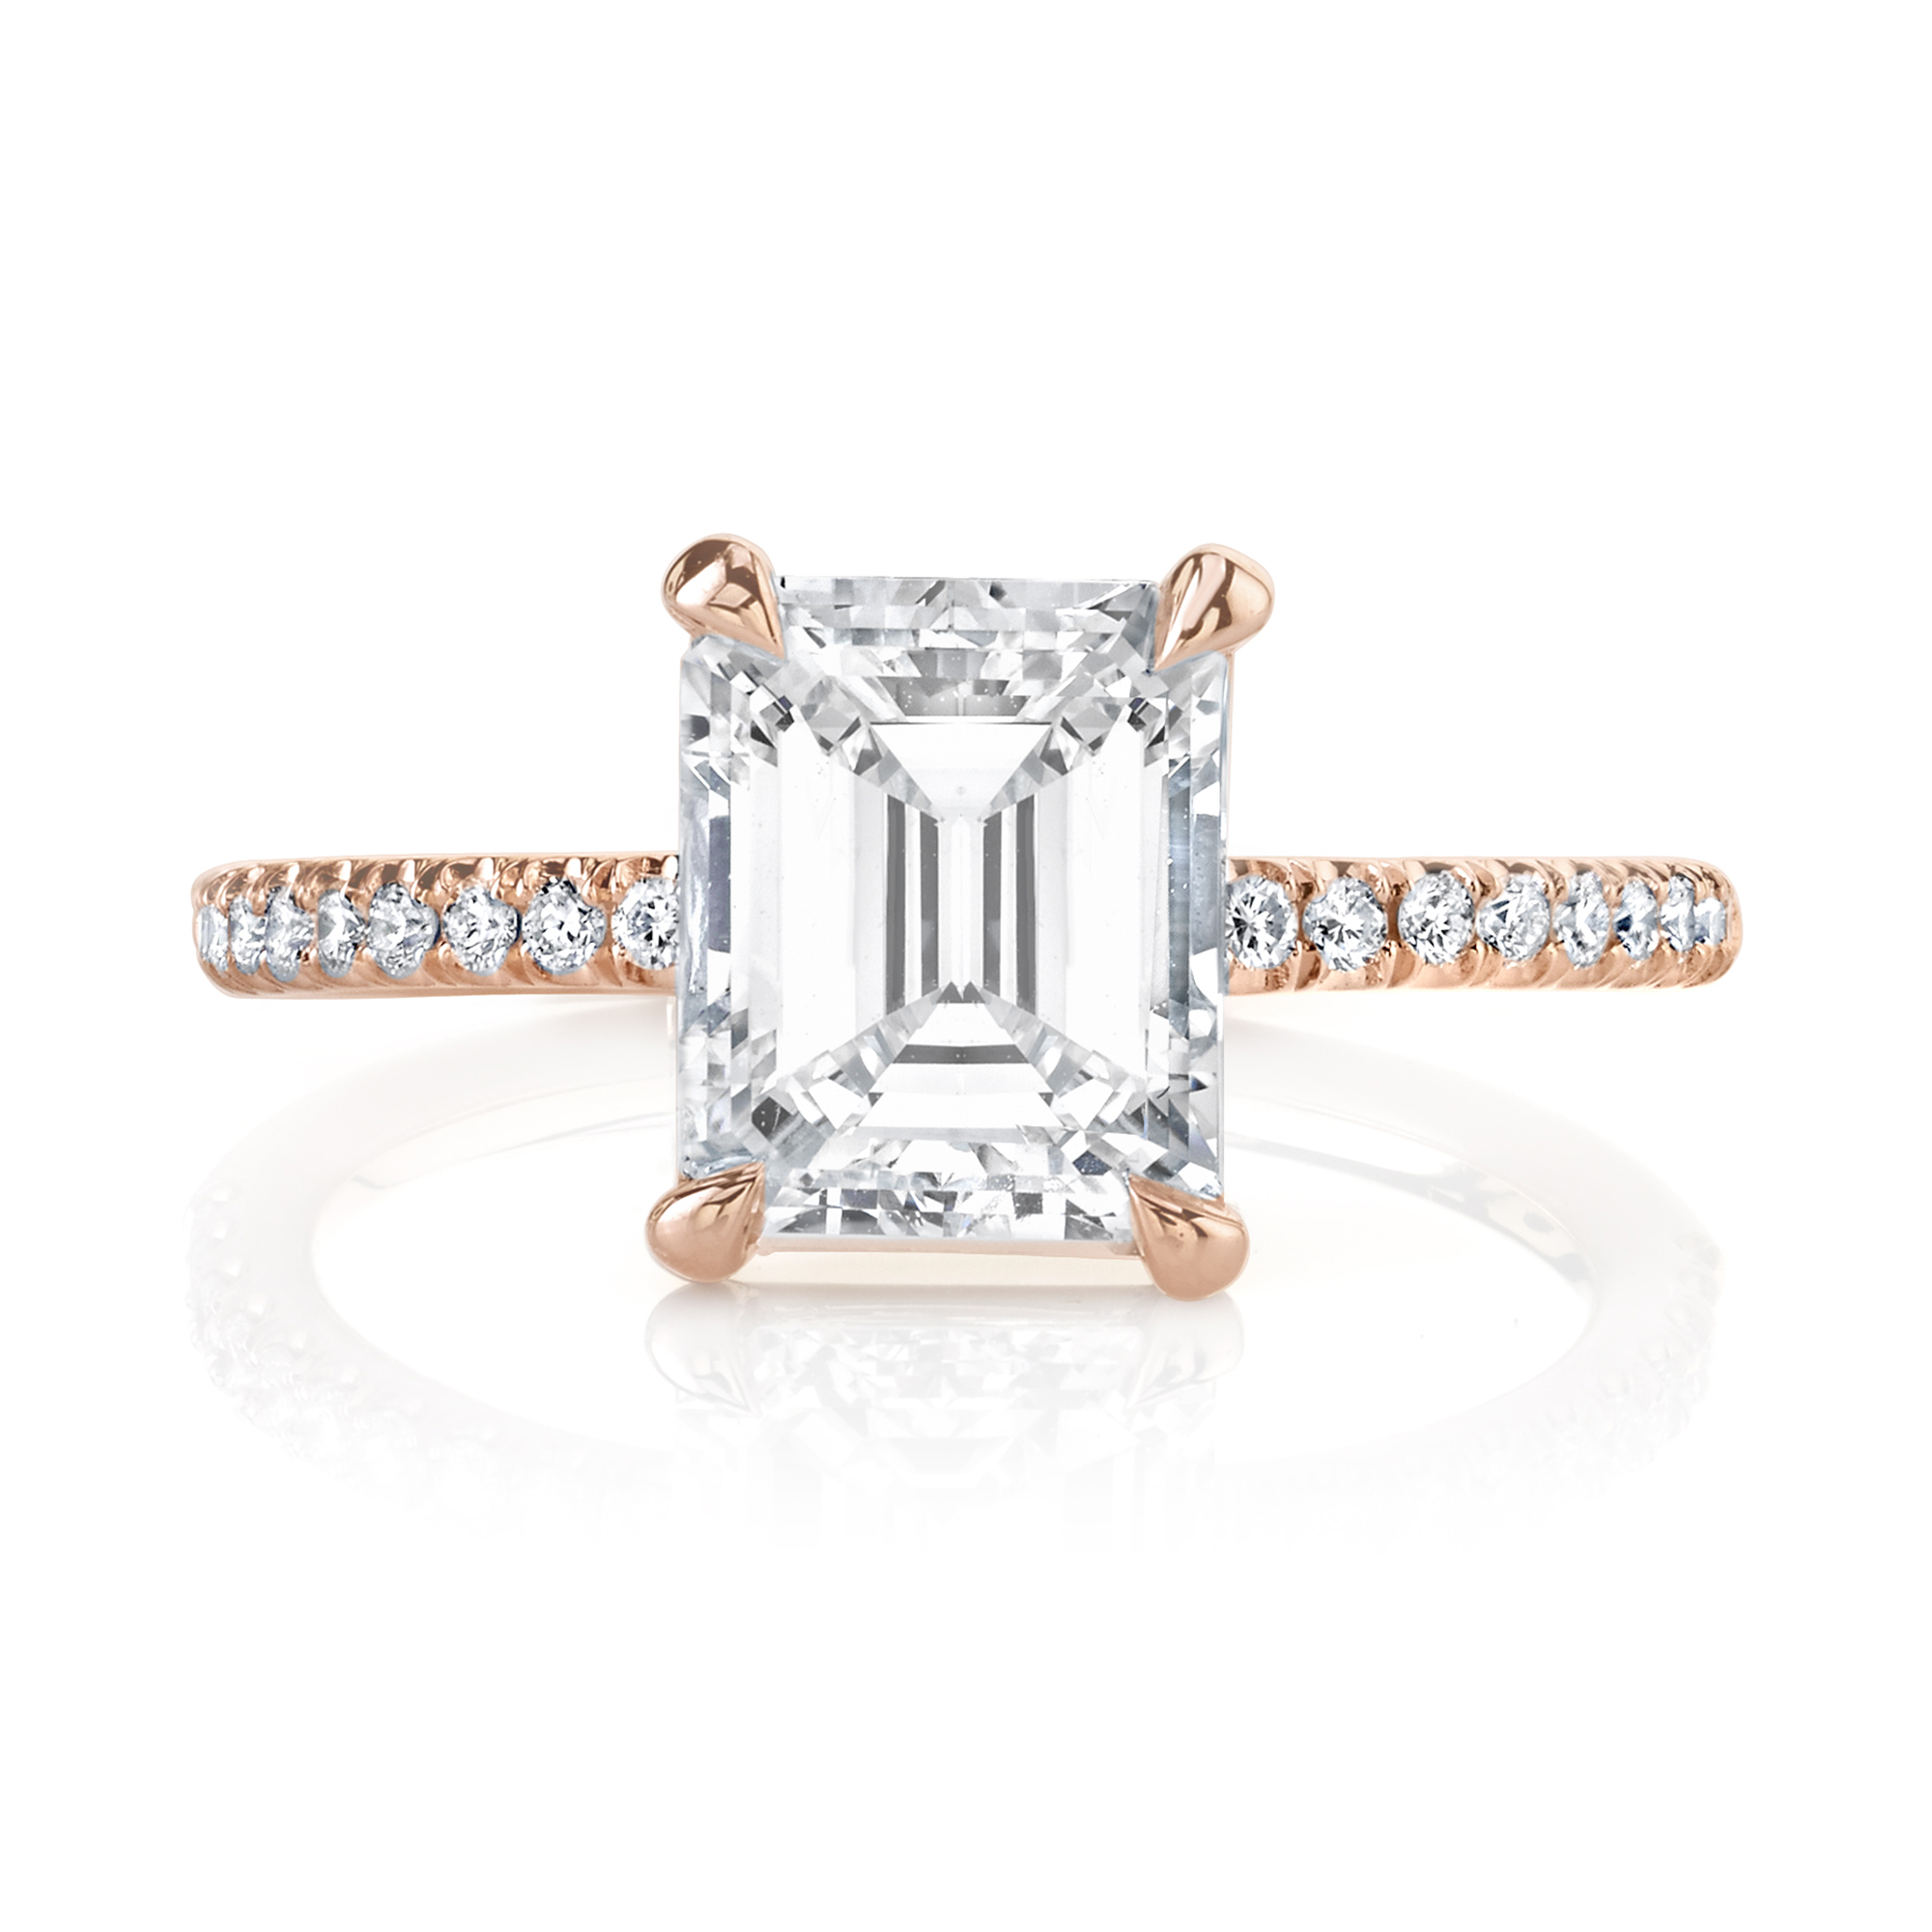 Custom 1.43ct. Emerald Cut Rose Gold Engagment Ring